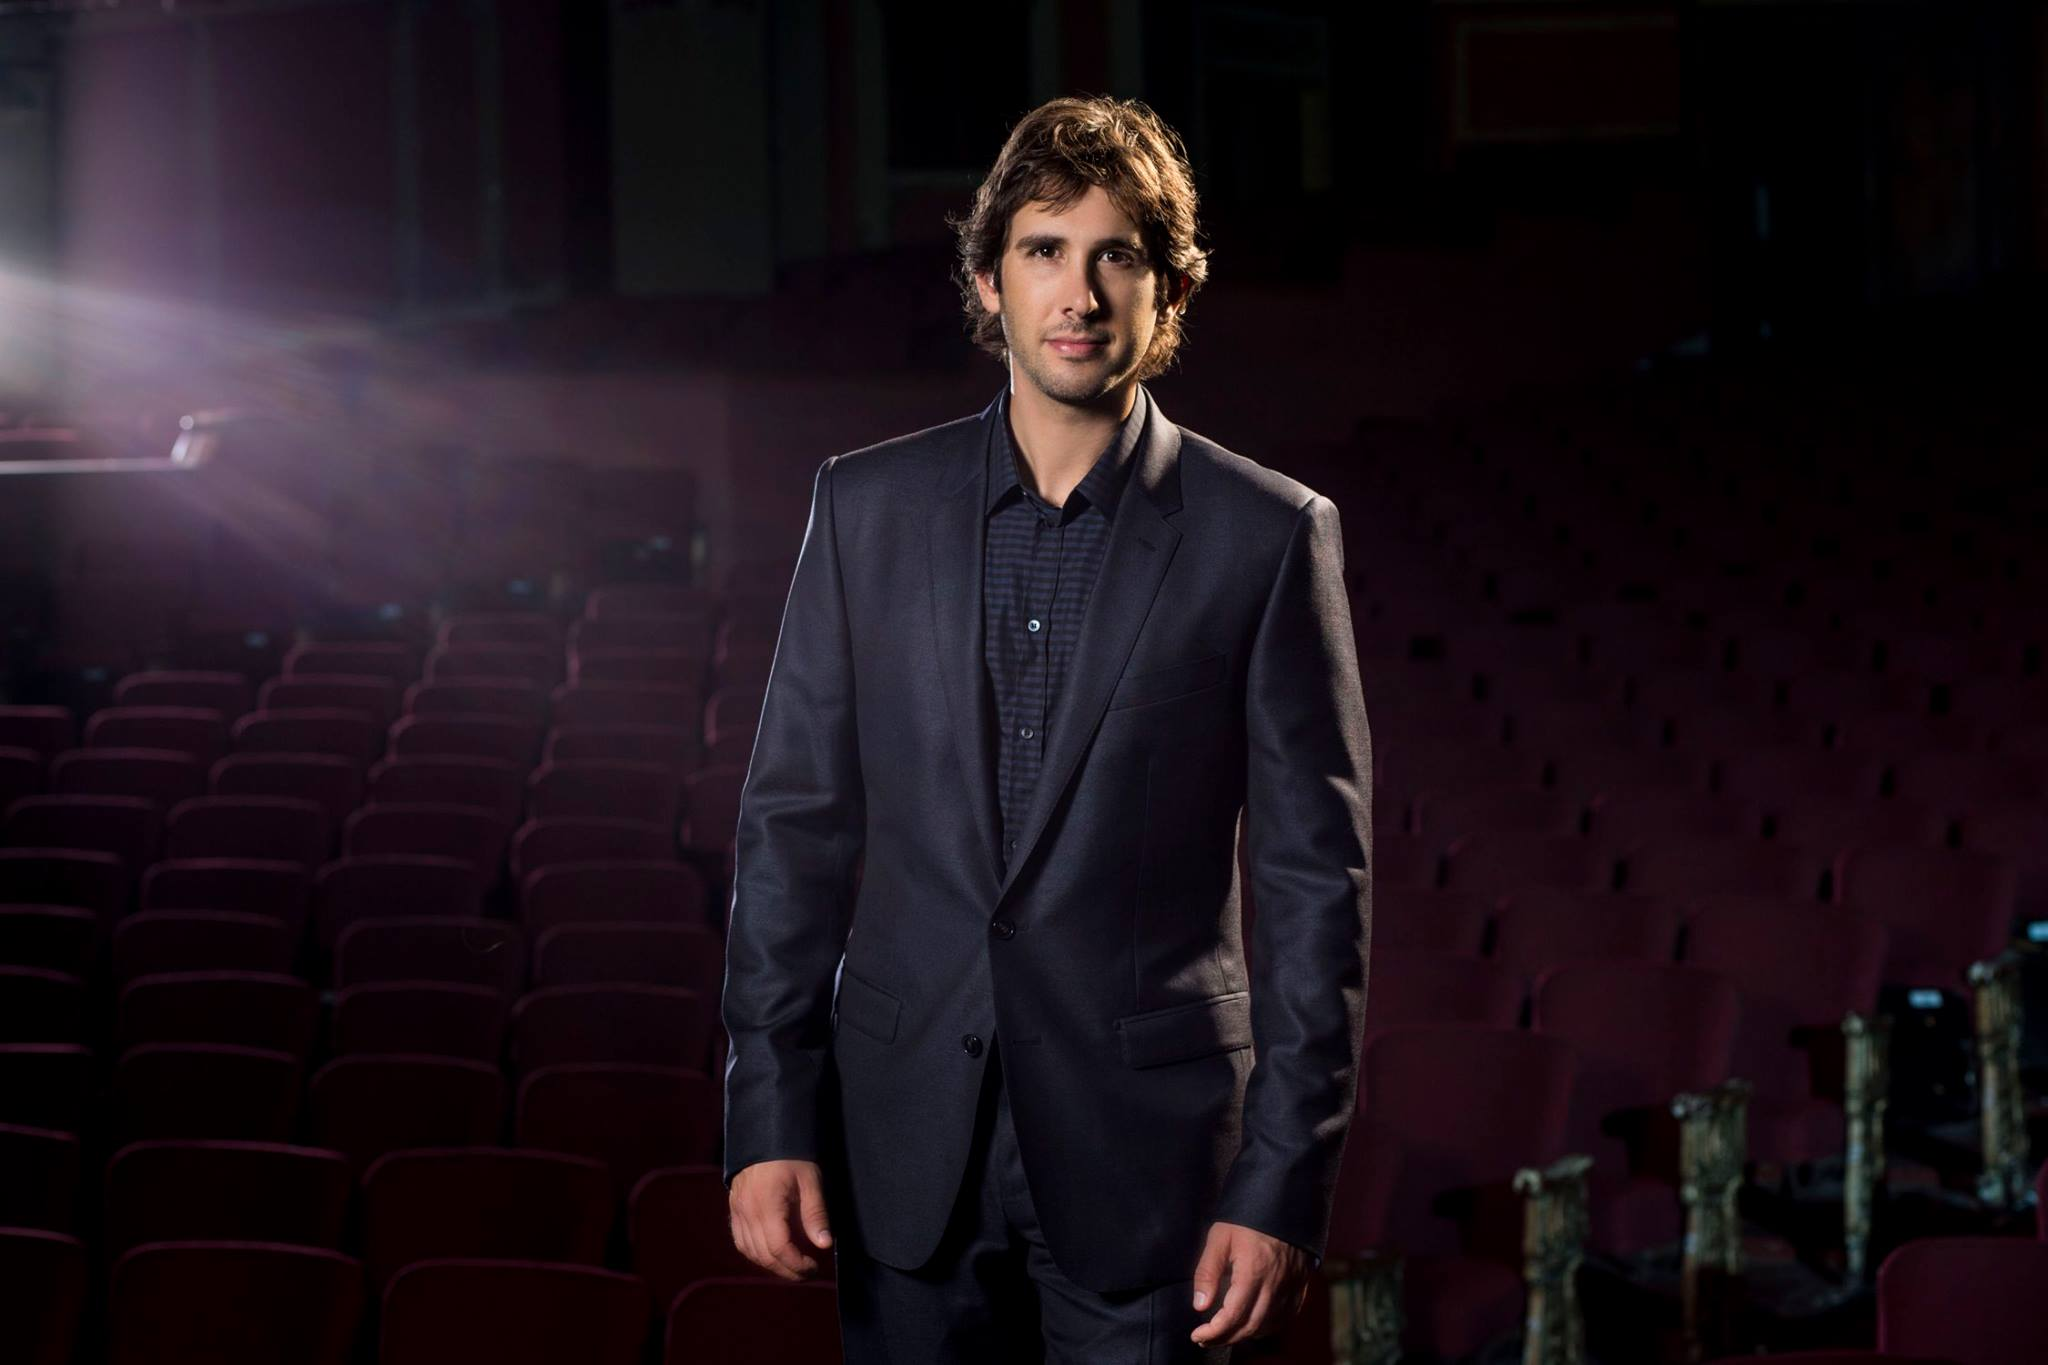 josh groban upcoming concerts in singapore in 2019